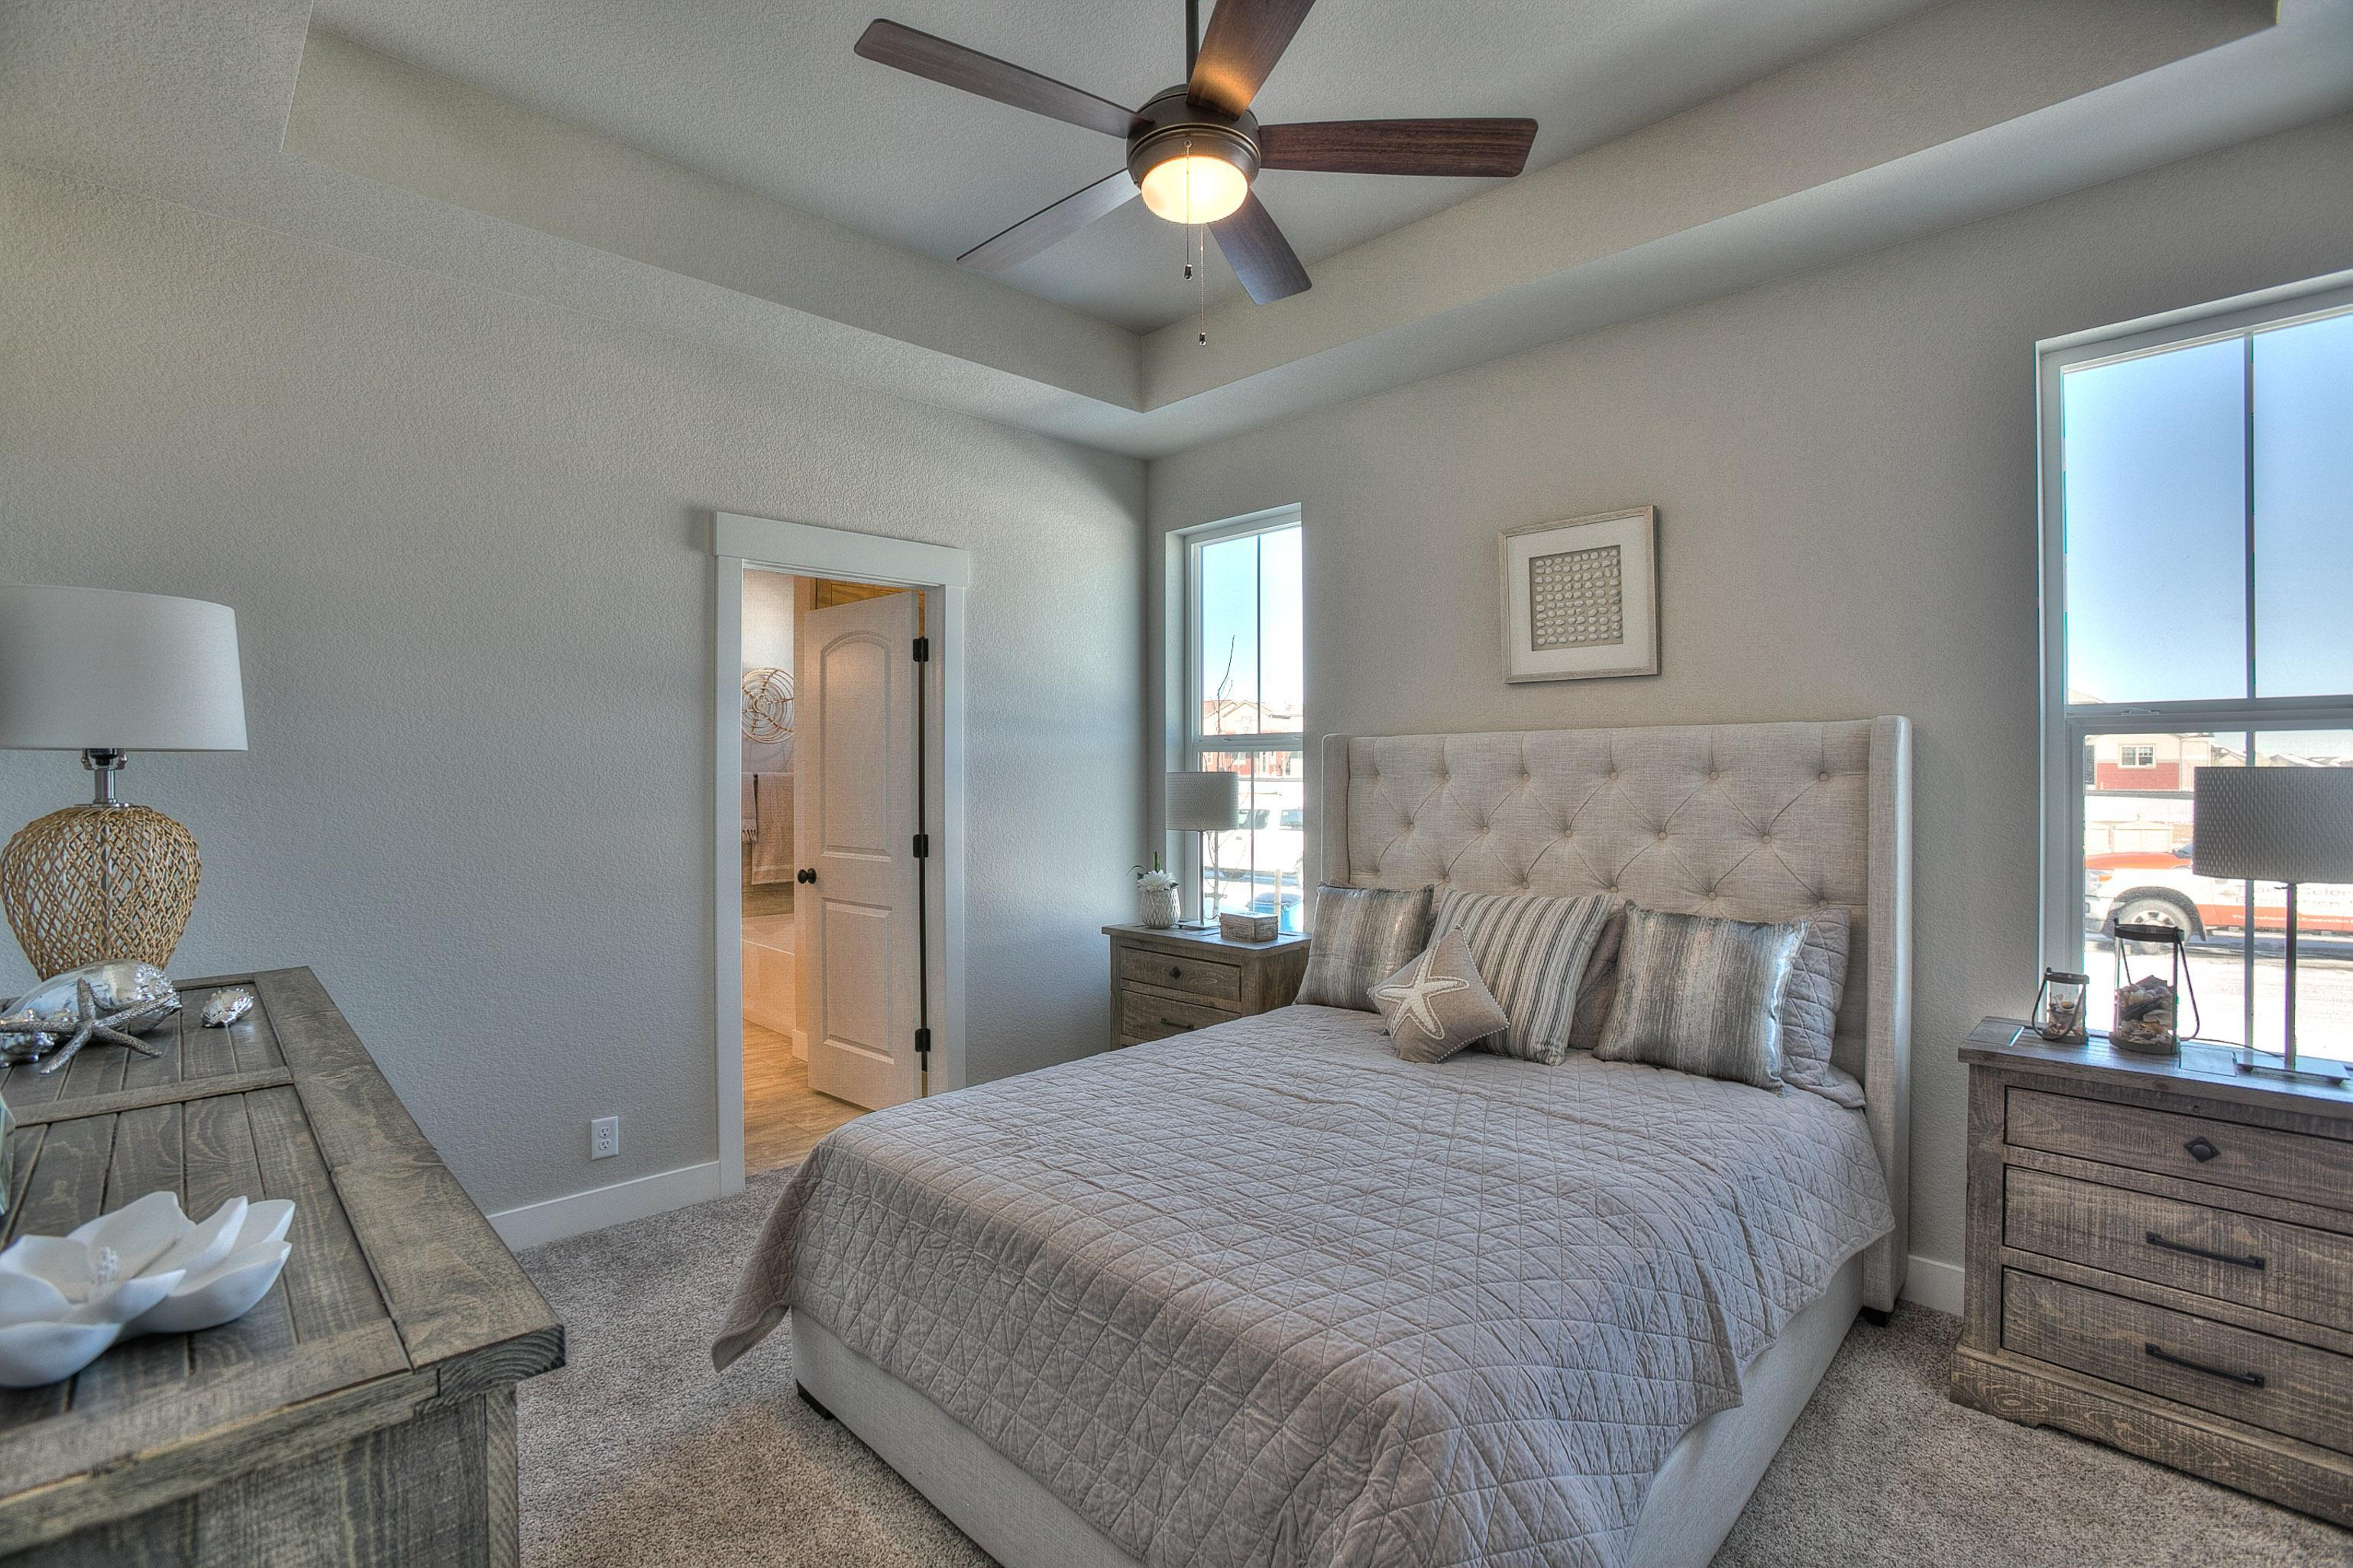 Bedroom featured in the Ambrose By Landmark Homes  in Fort Collins-Loveland, CO